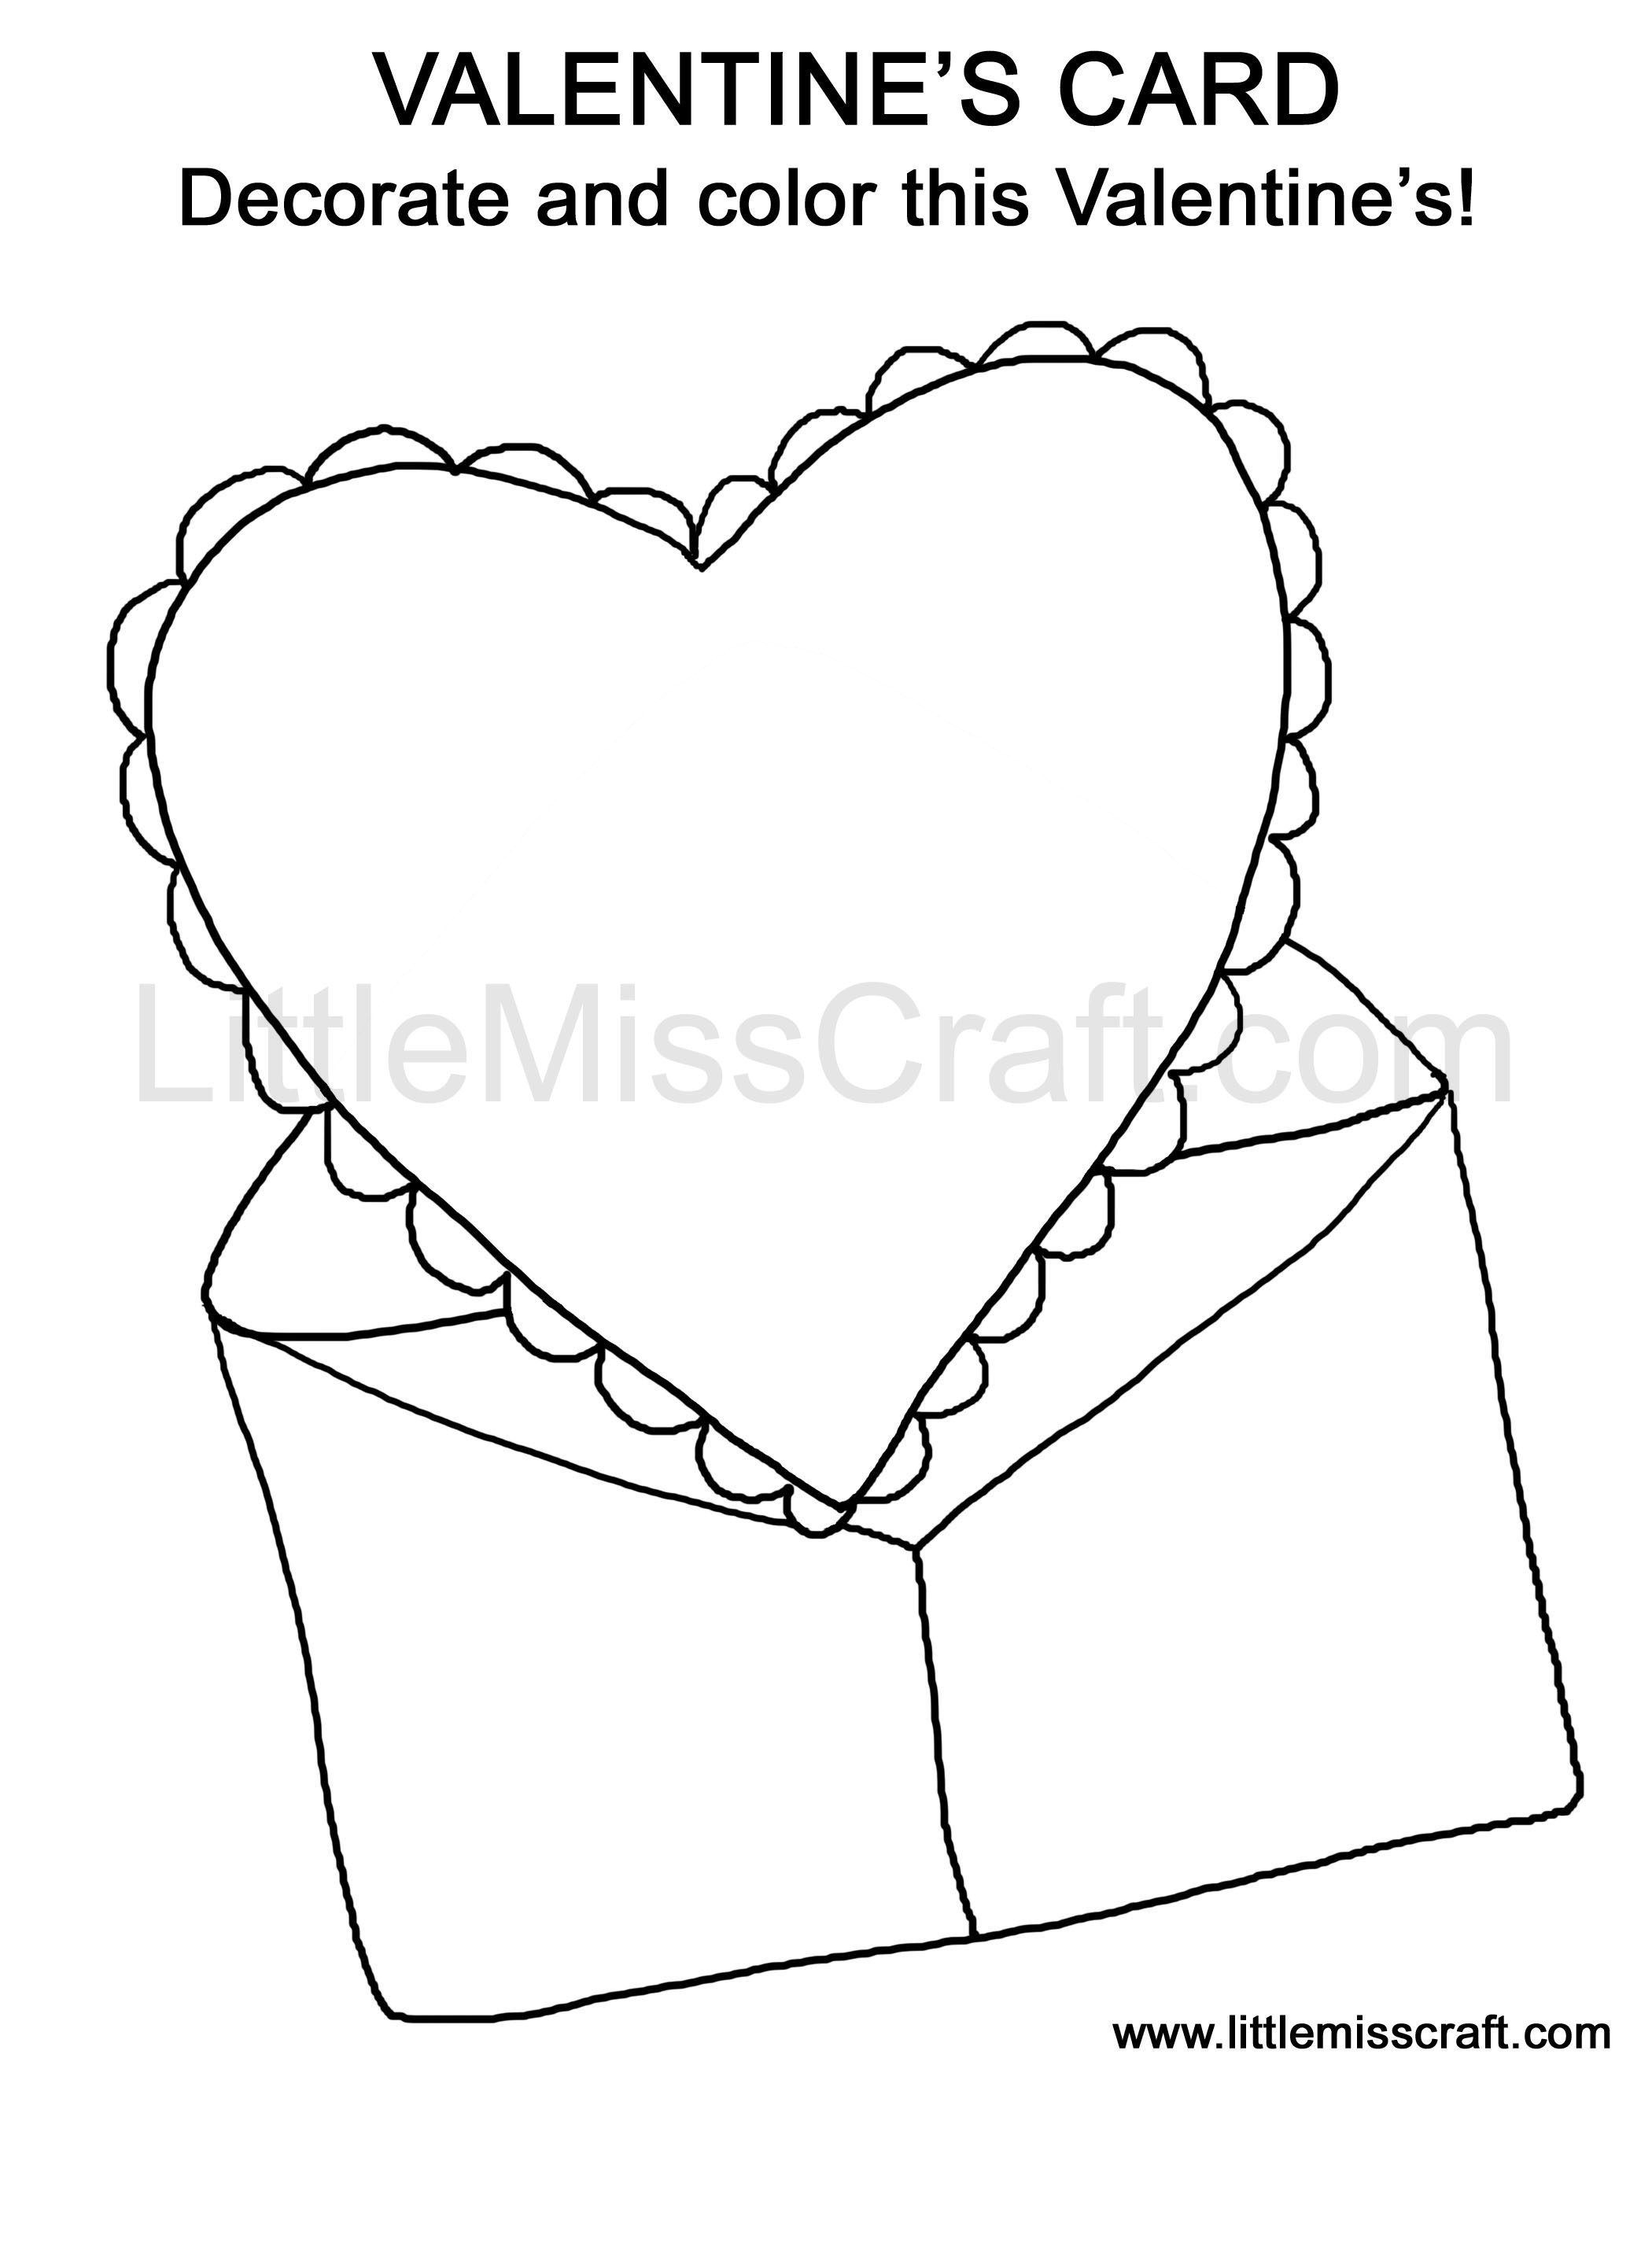 valentine's day, doodle, coloring page, drawing, printable, heart, flowers, valentines, chocolates